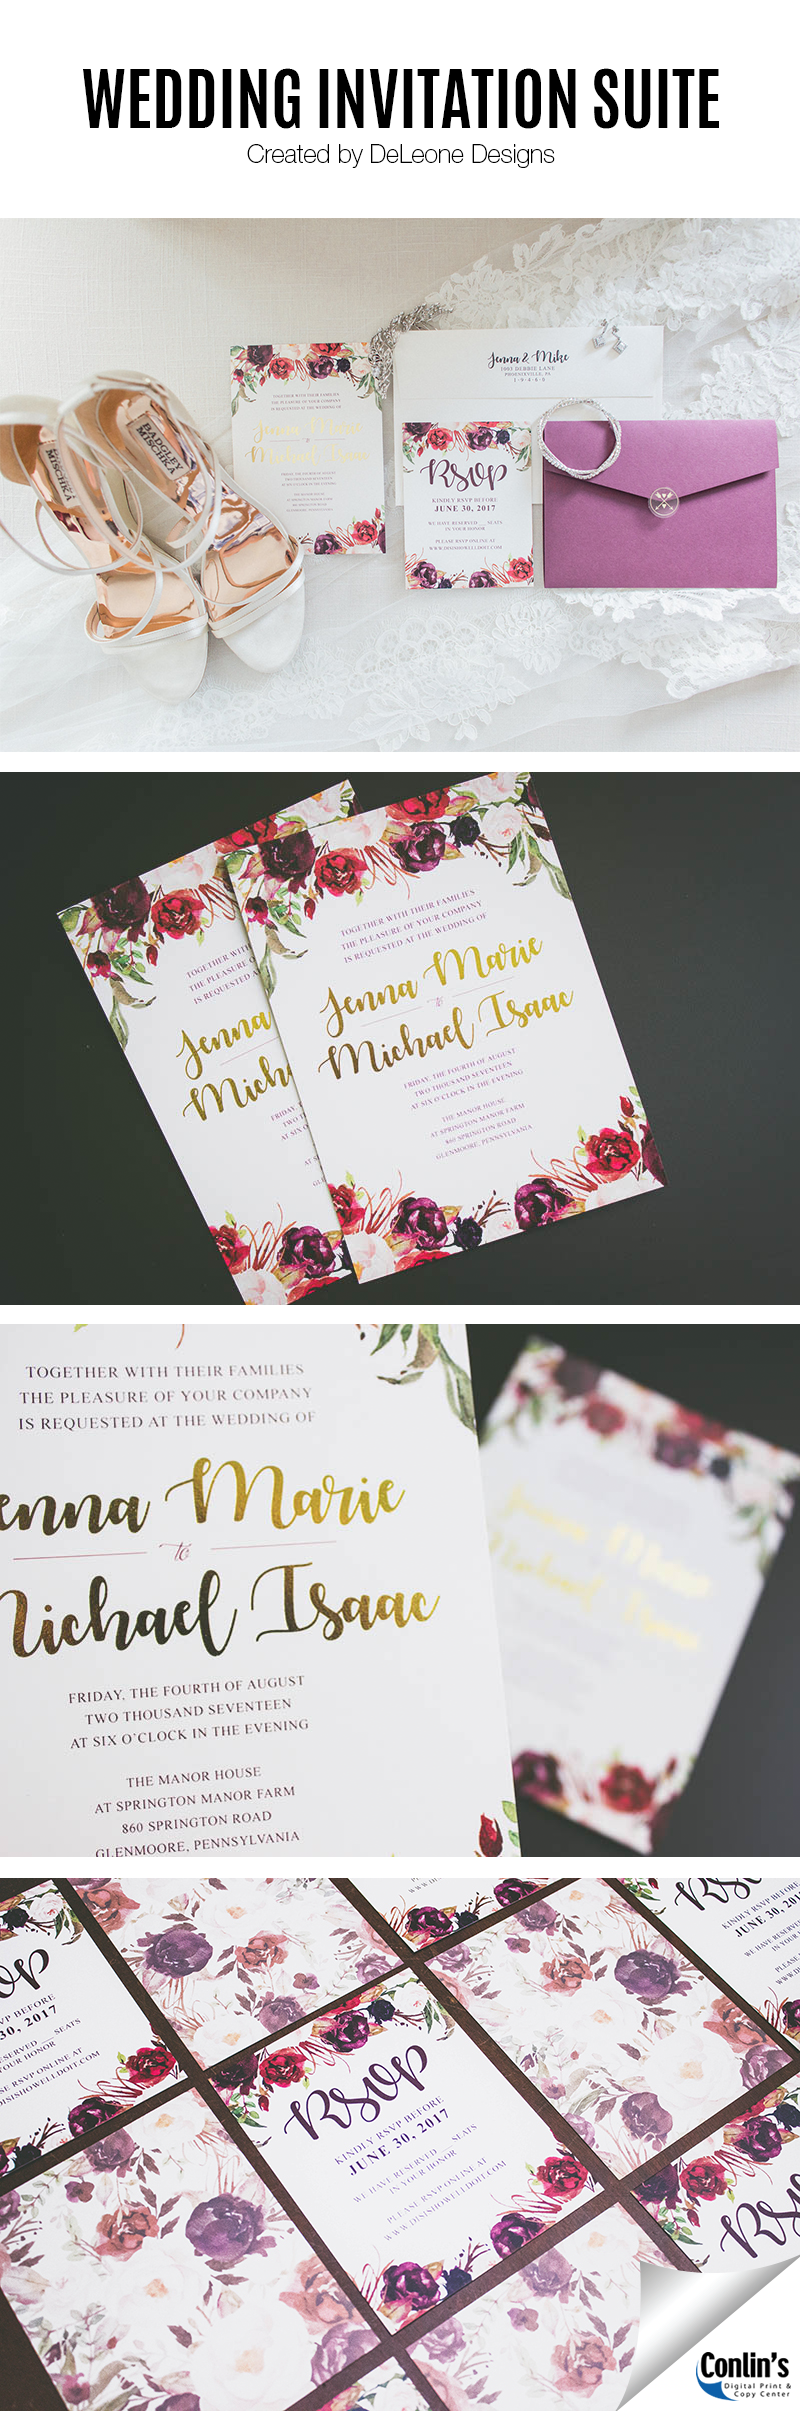 Design Inspiration Wedding Invitation Suite With FREE Invitation - Wedding invitation templates: wedding invitation suite templates